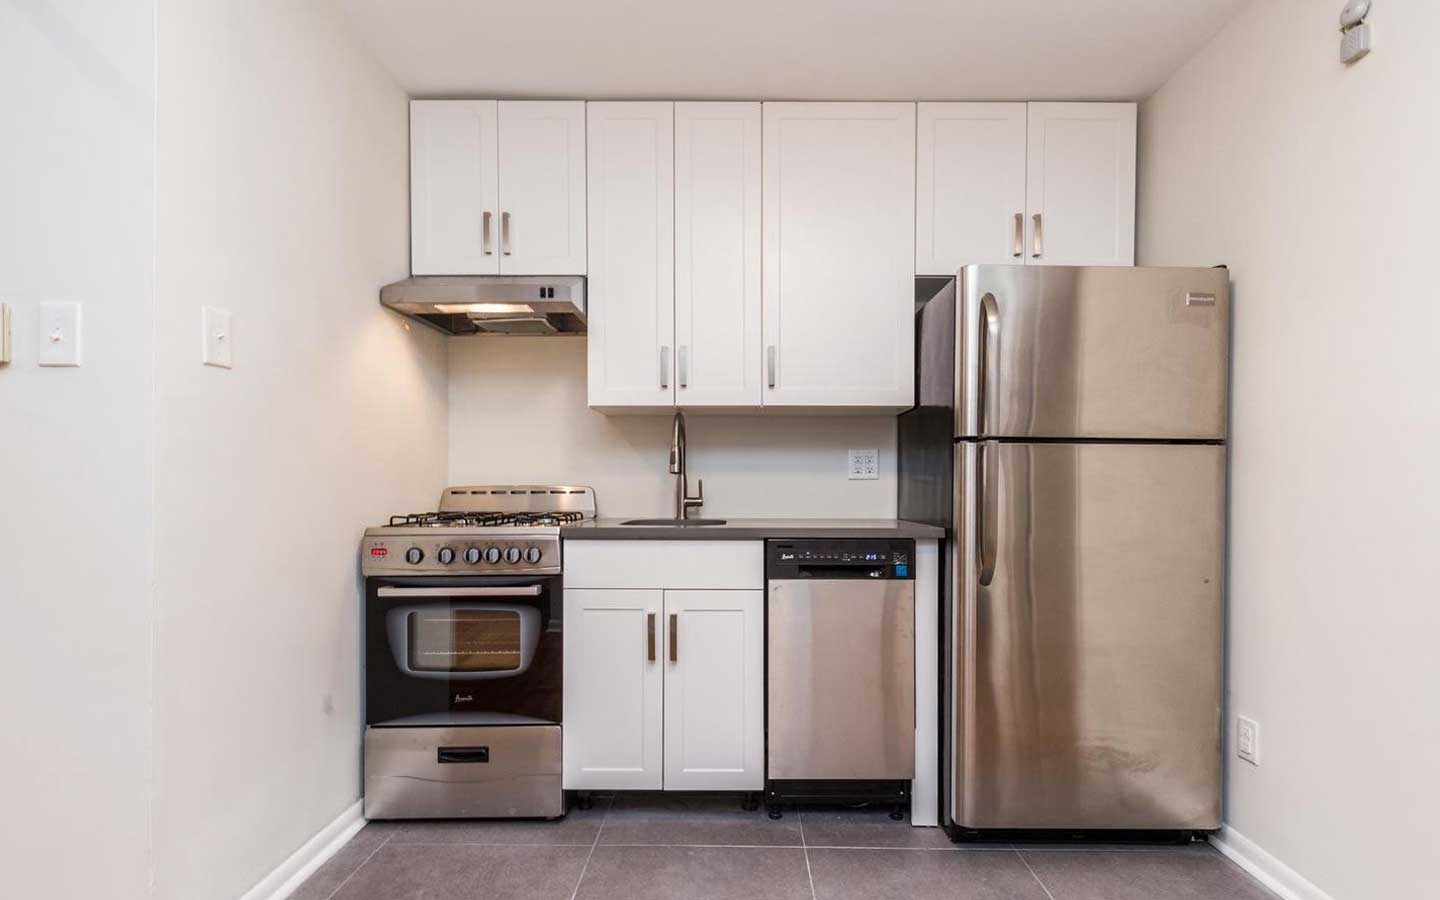 Updated kitchen with stainless steel appliances, sleek tile work, and white shaker cabinetry at Sedgwick Terrace apartments for rent